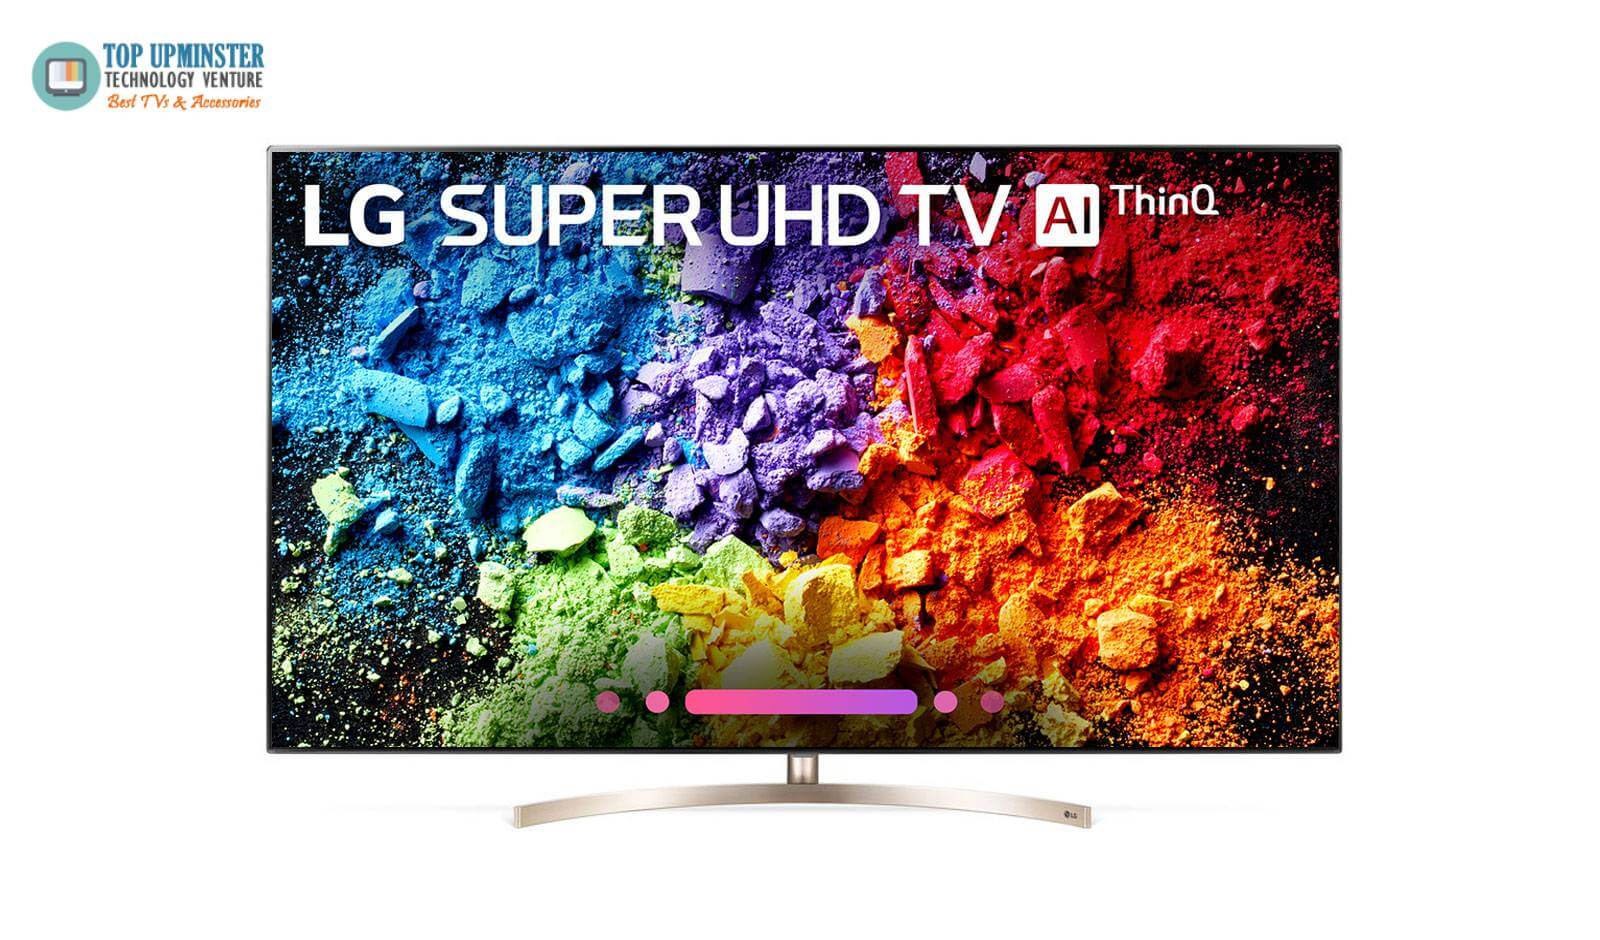 LG Super Ultra HD 4K Smart TV